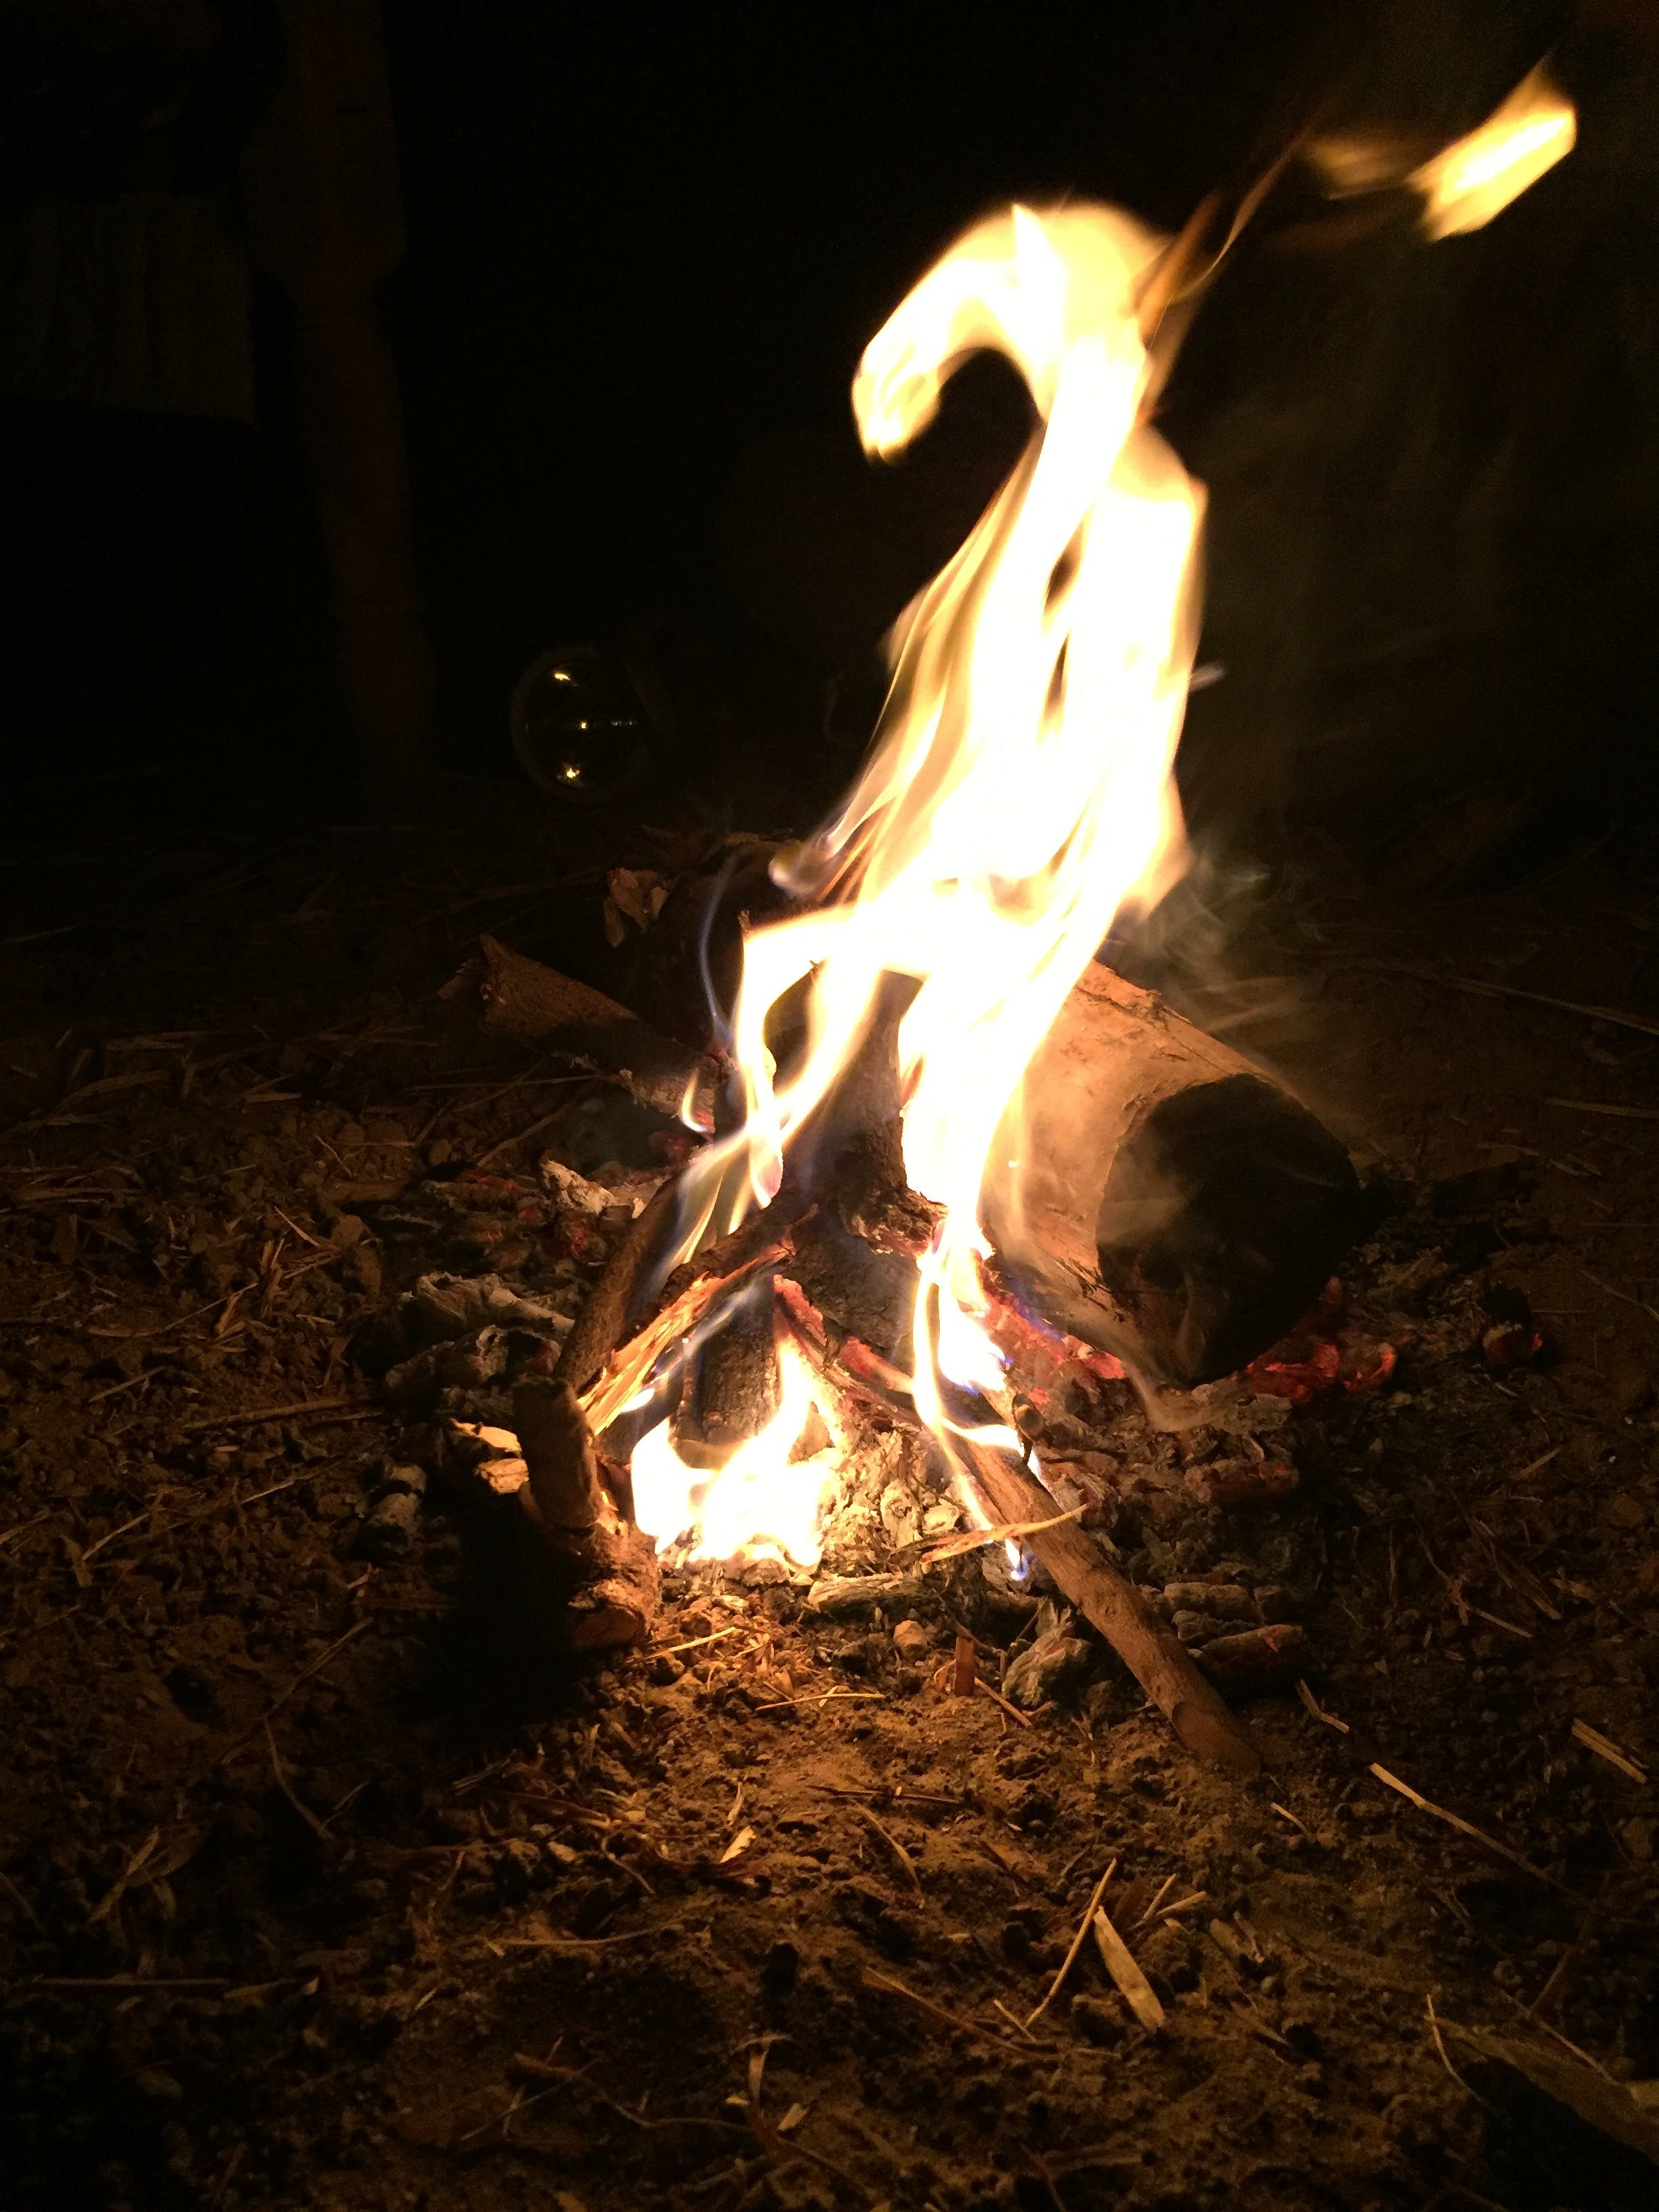 Free stock photo of campfire, camping, farm, fire